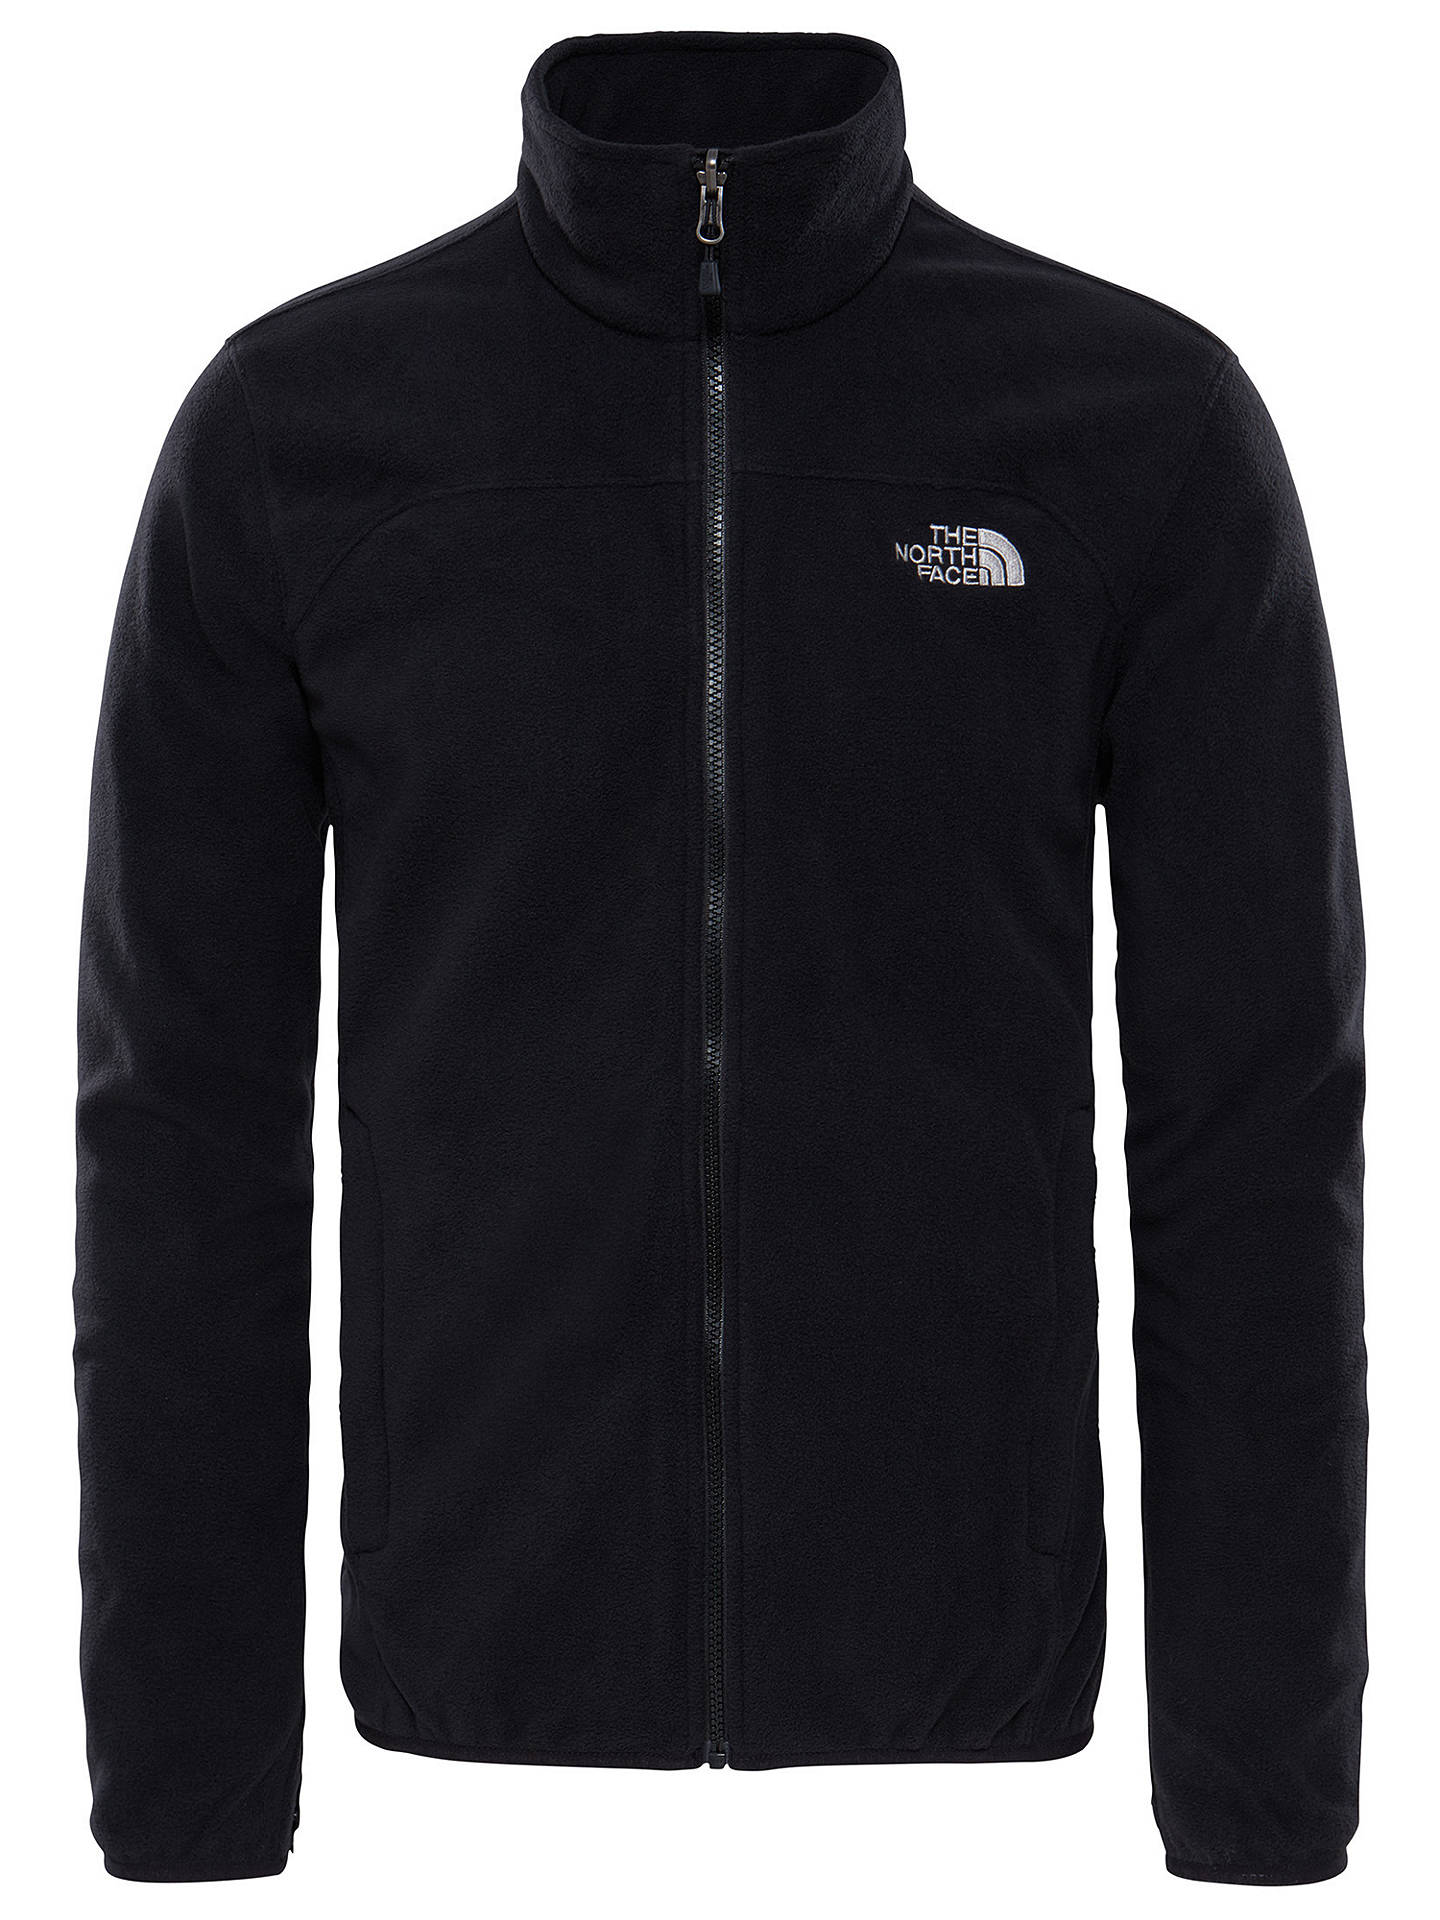 998527c88 The North Face Evolve II Triclimate 3-in-1 Waterproof Men's Jacket, Black